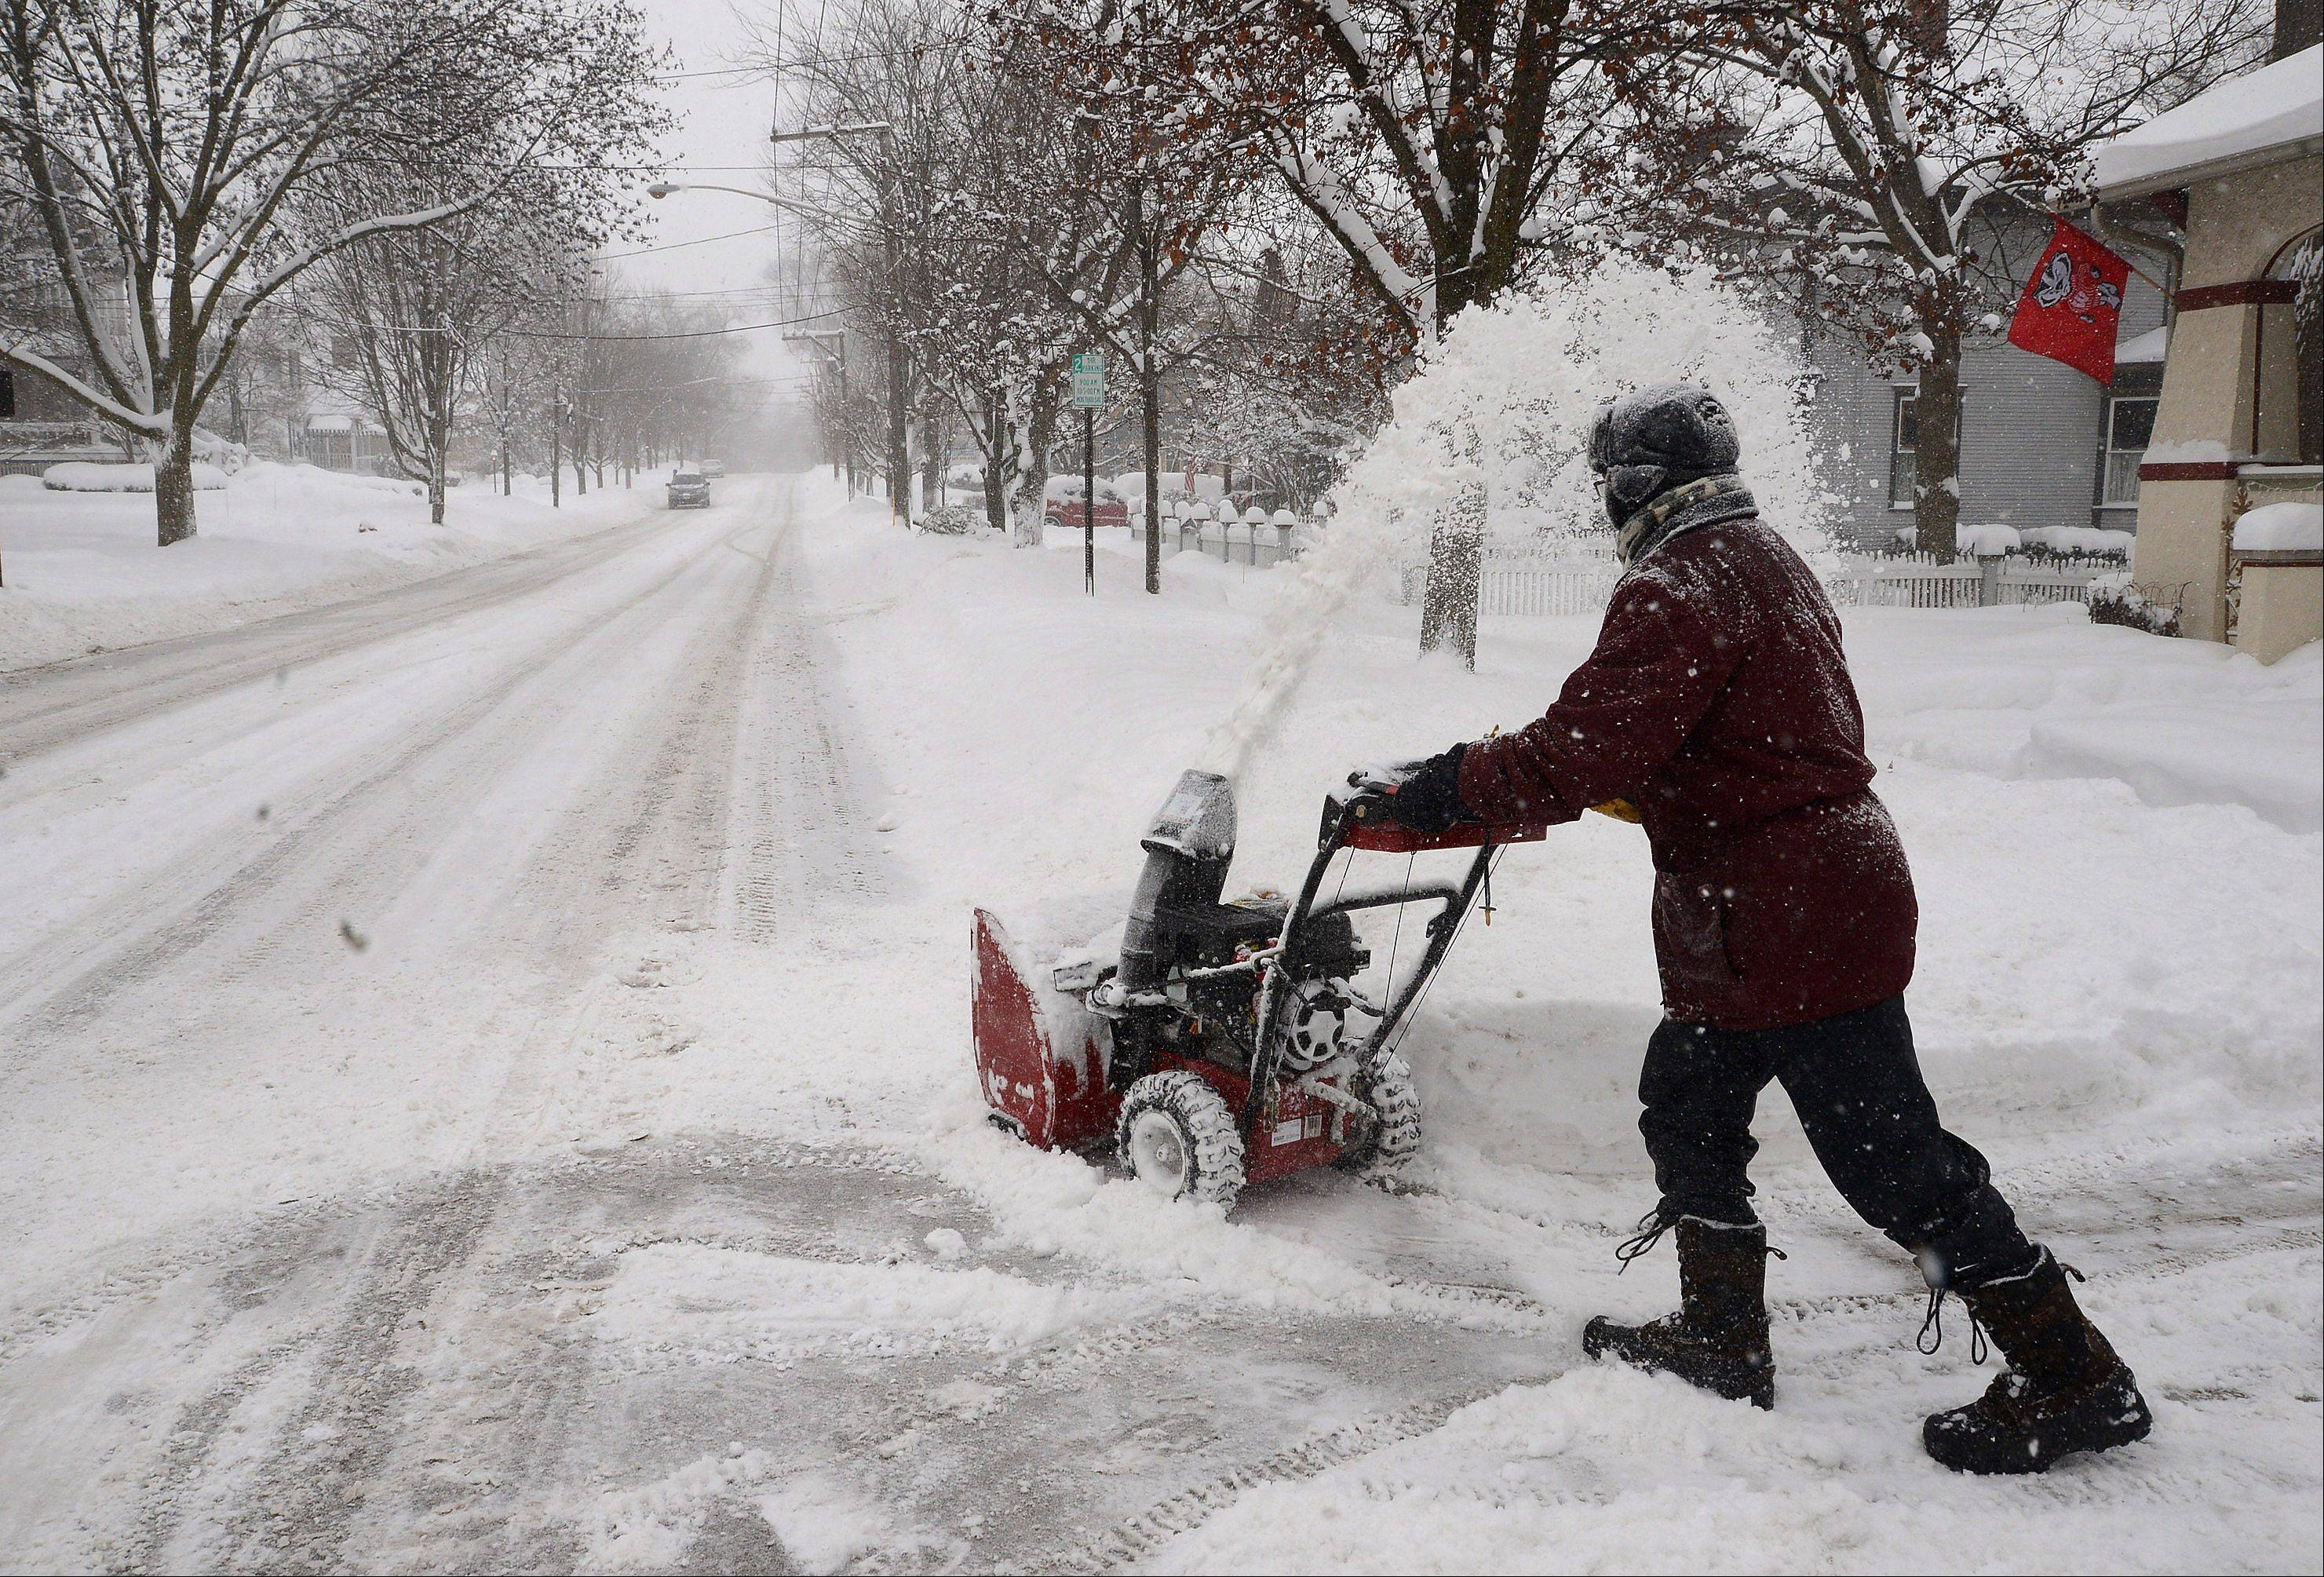 Kevin Pokorny of West Lake Street in downtown Barrington works clearing snow from neighbors' driveways and sidewalks Thursday morning, as Barrington woke up to 10 plus inches of snow overnight.